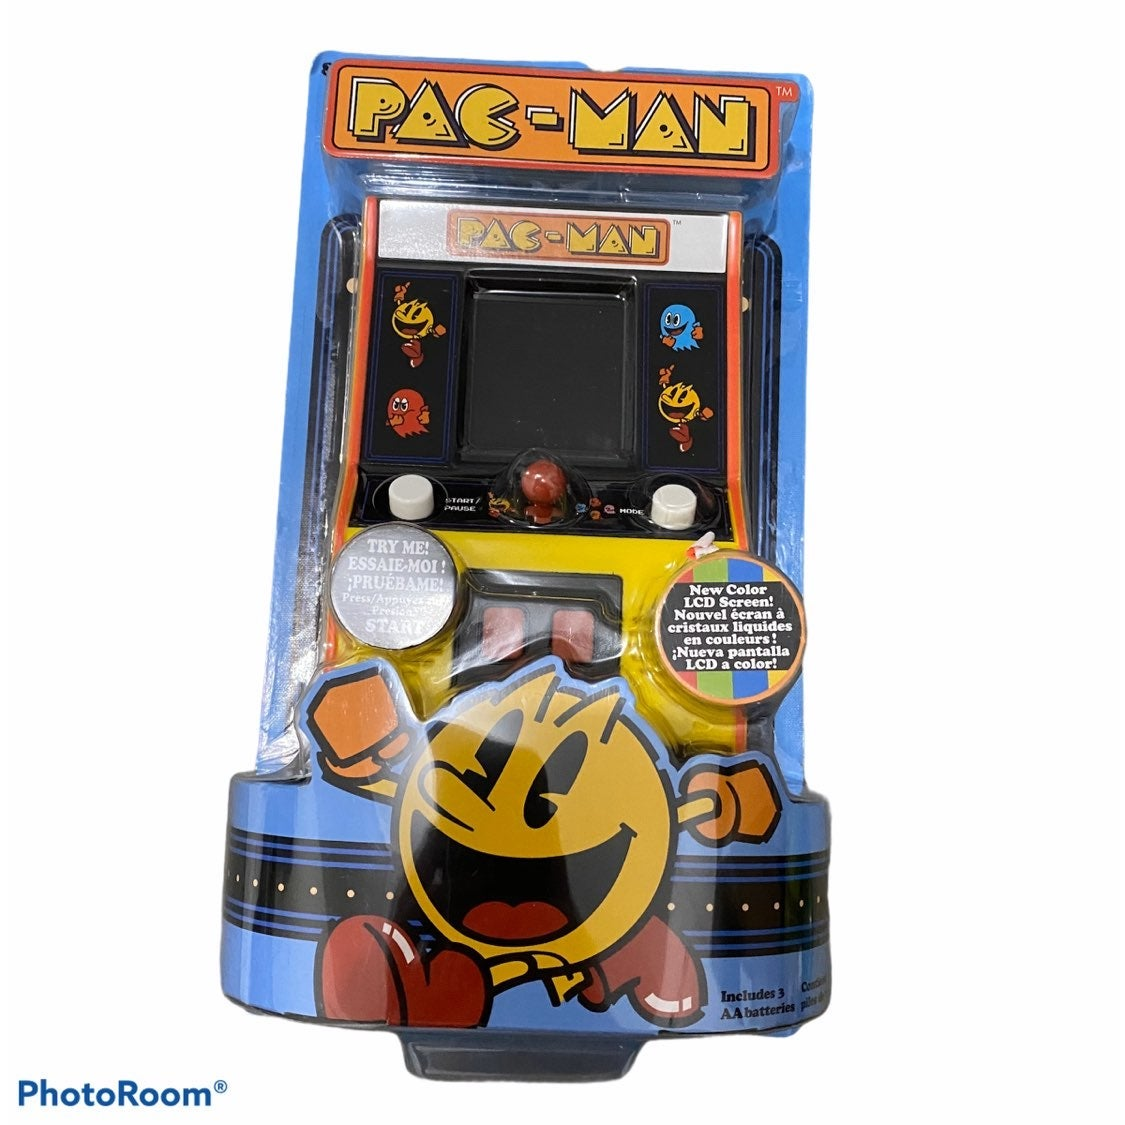 NEW Pac-Man Arcade Console Video Game